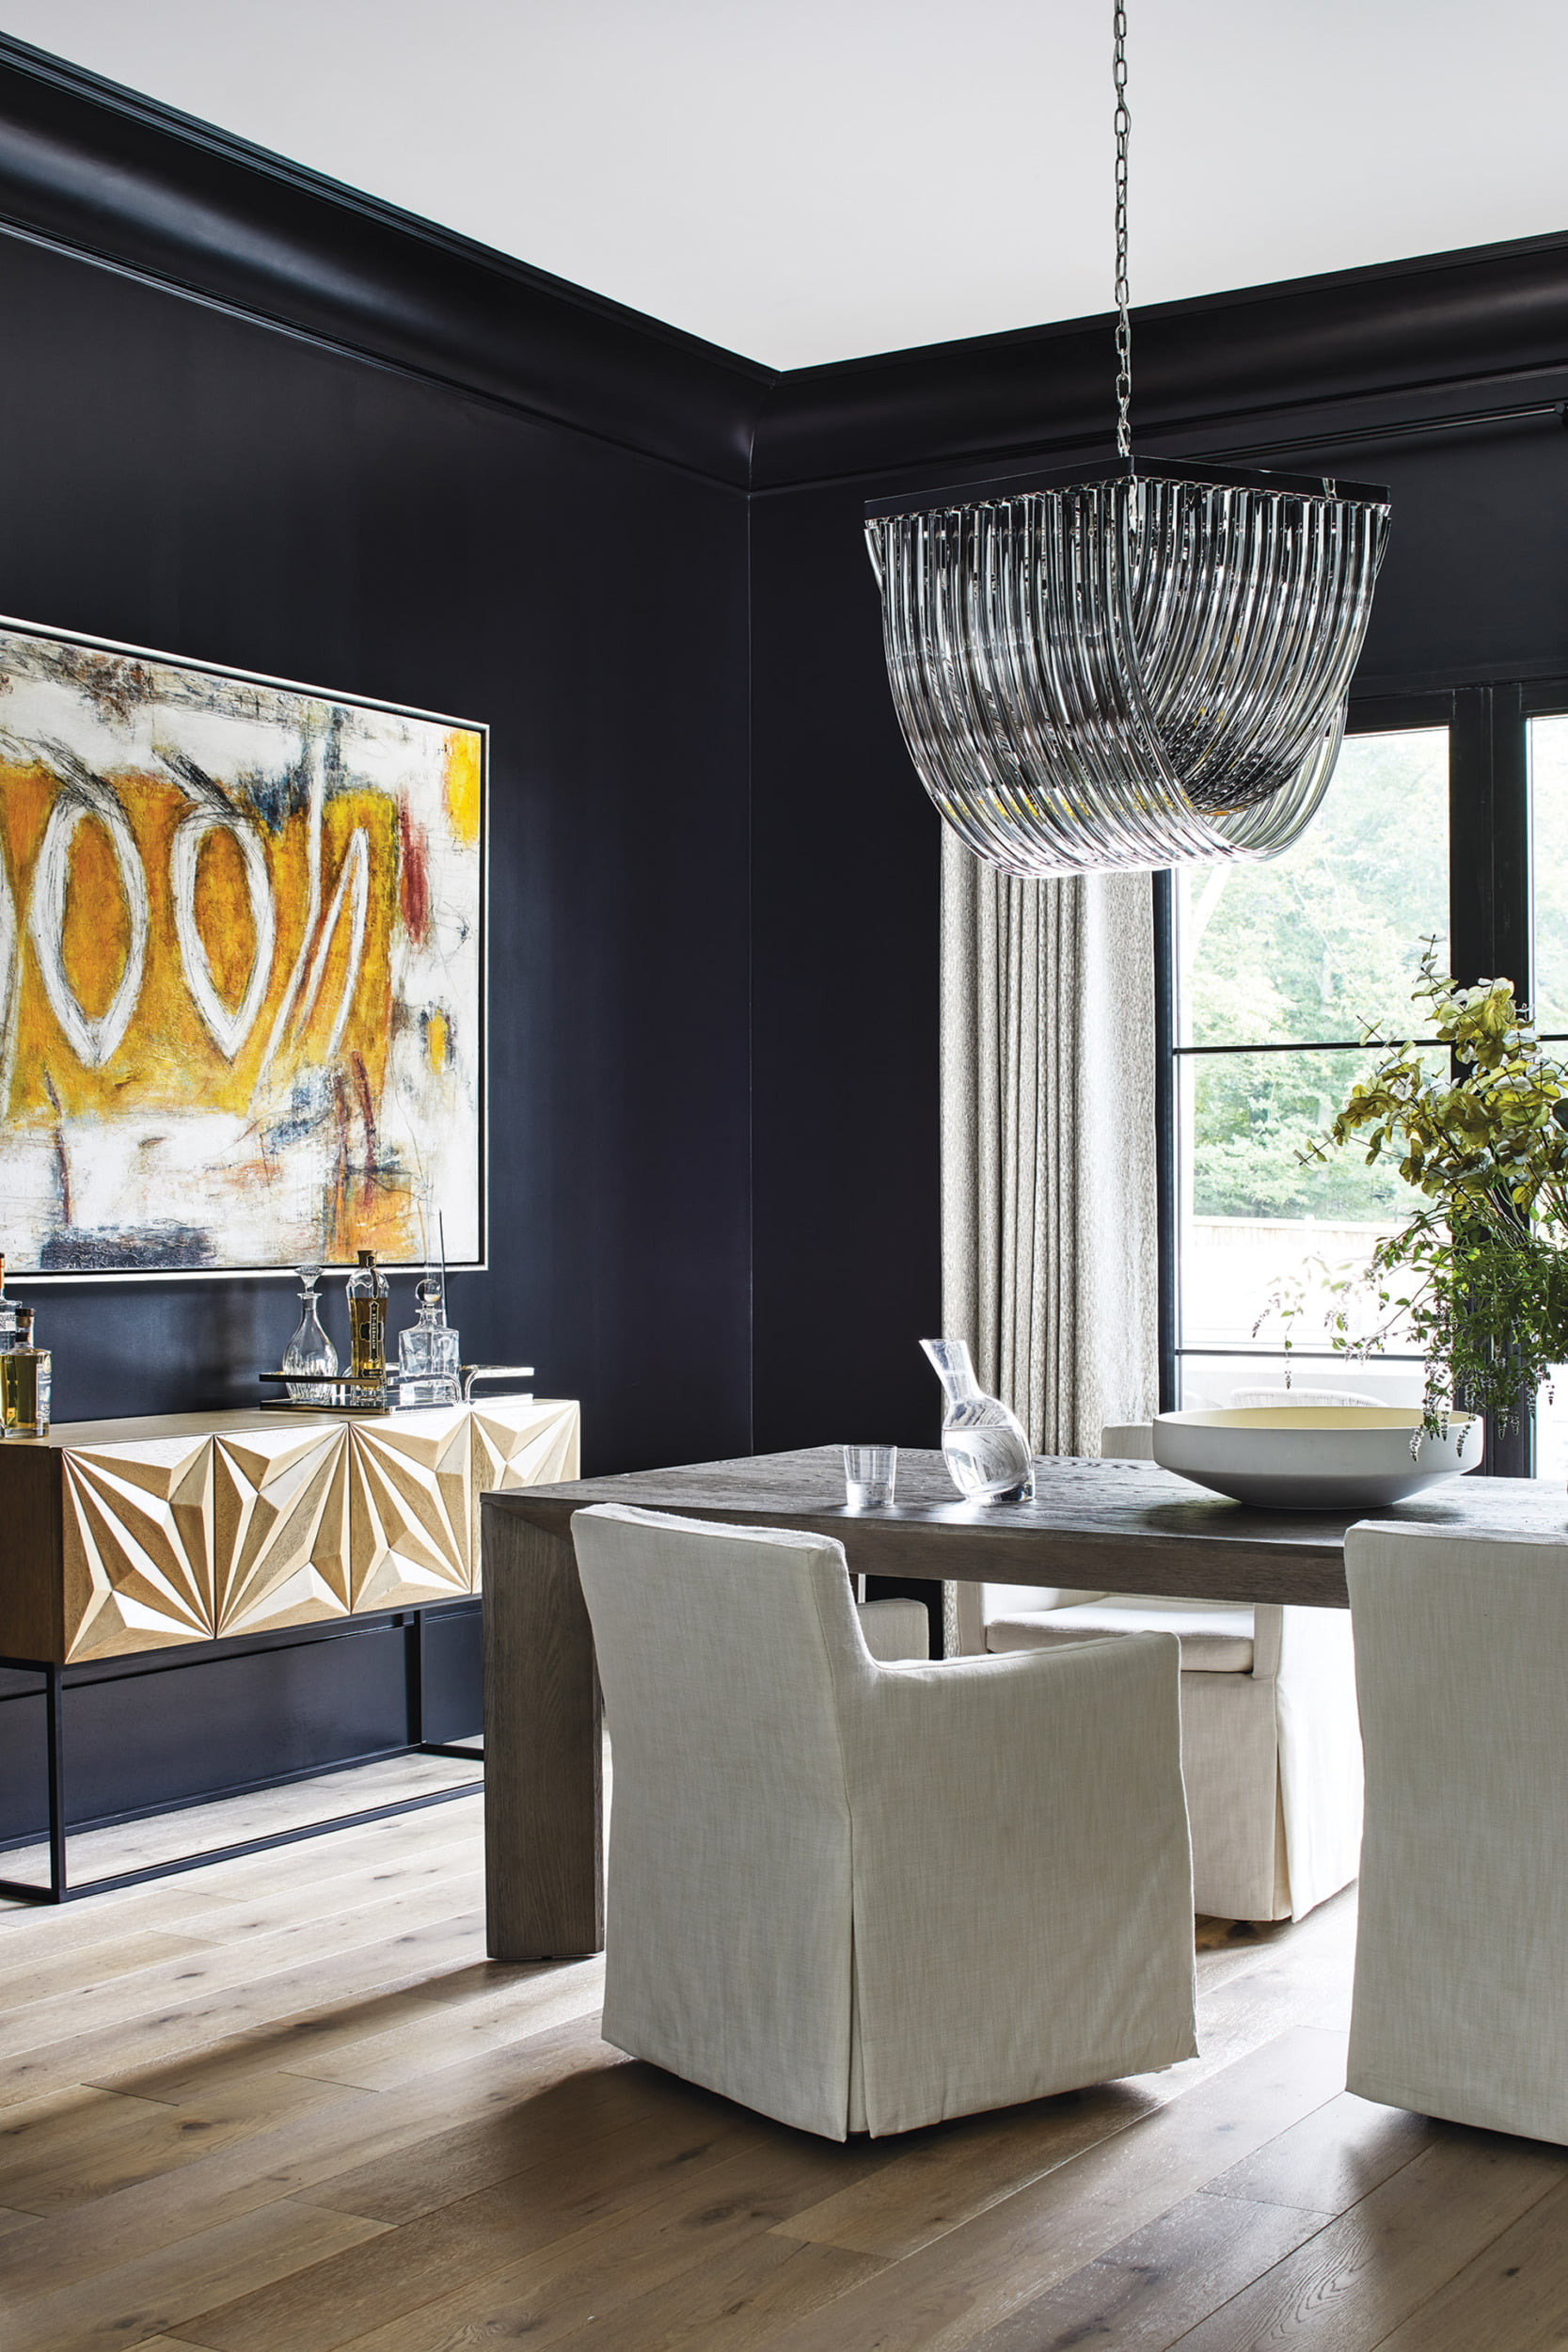 Sideboard from Noir LA in the dining room. The table and chairs are from RH.